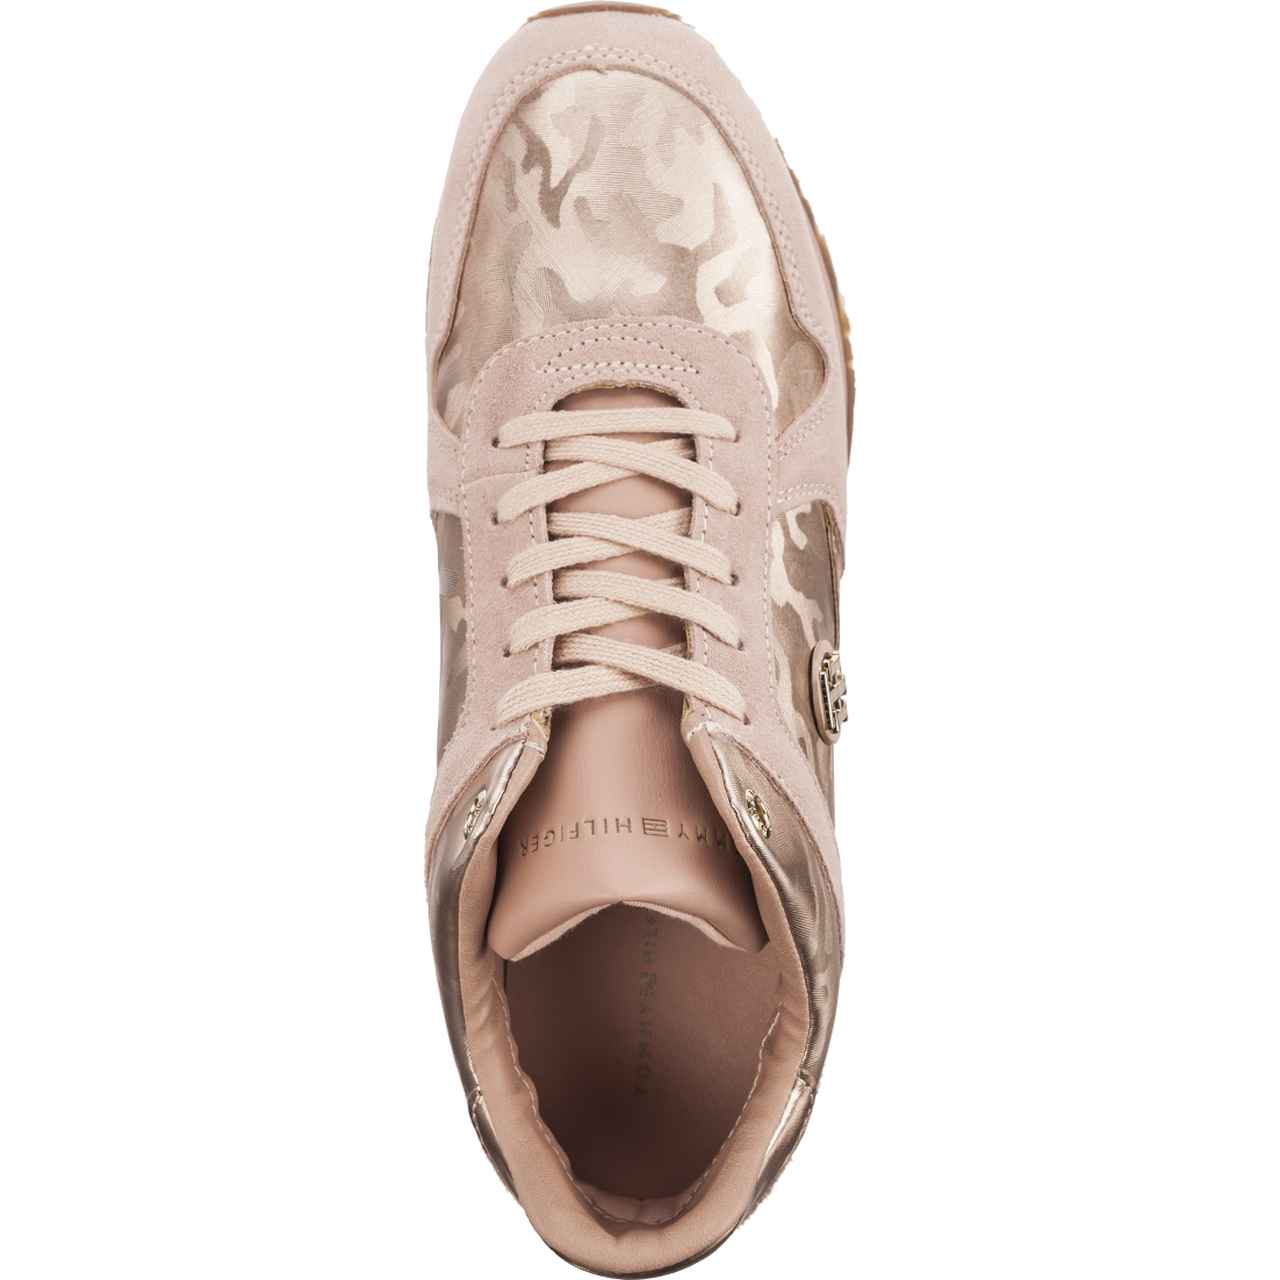 e4491fadc Tommy Hilfiger Powder Sneaker Mahogany Rose Camo Metallic Wedge Sneaker